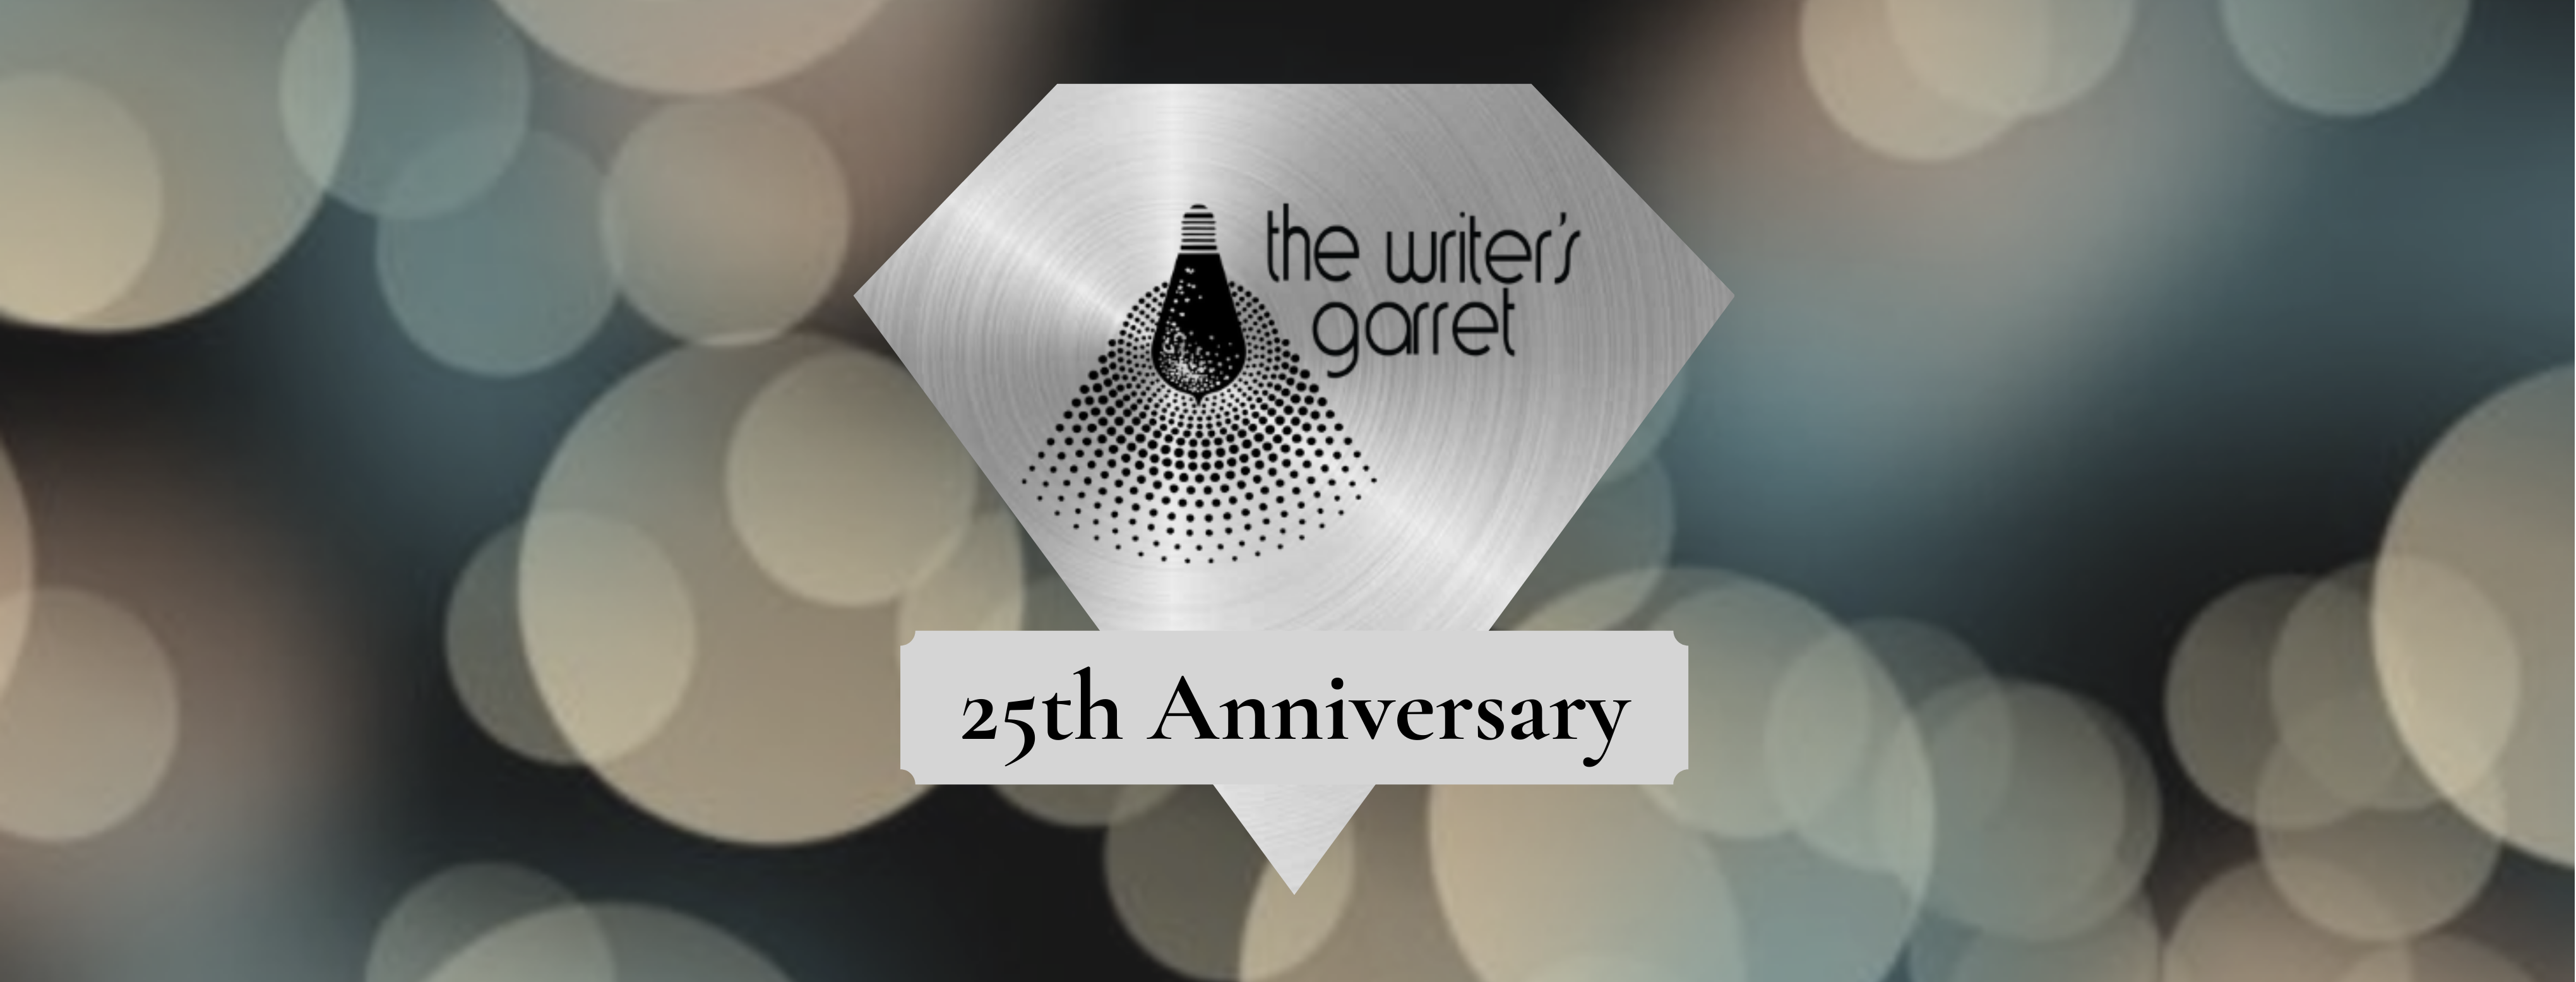 25th Anniversary Facebook Cover